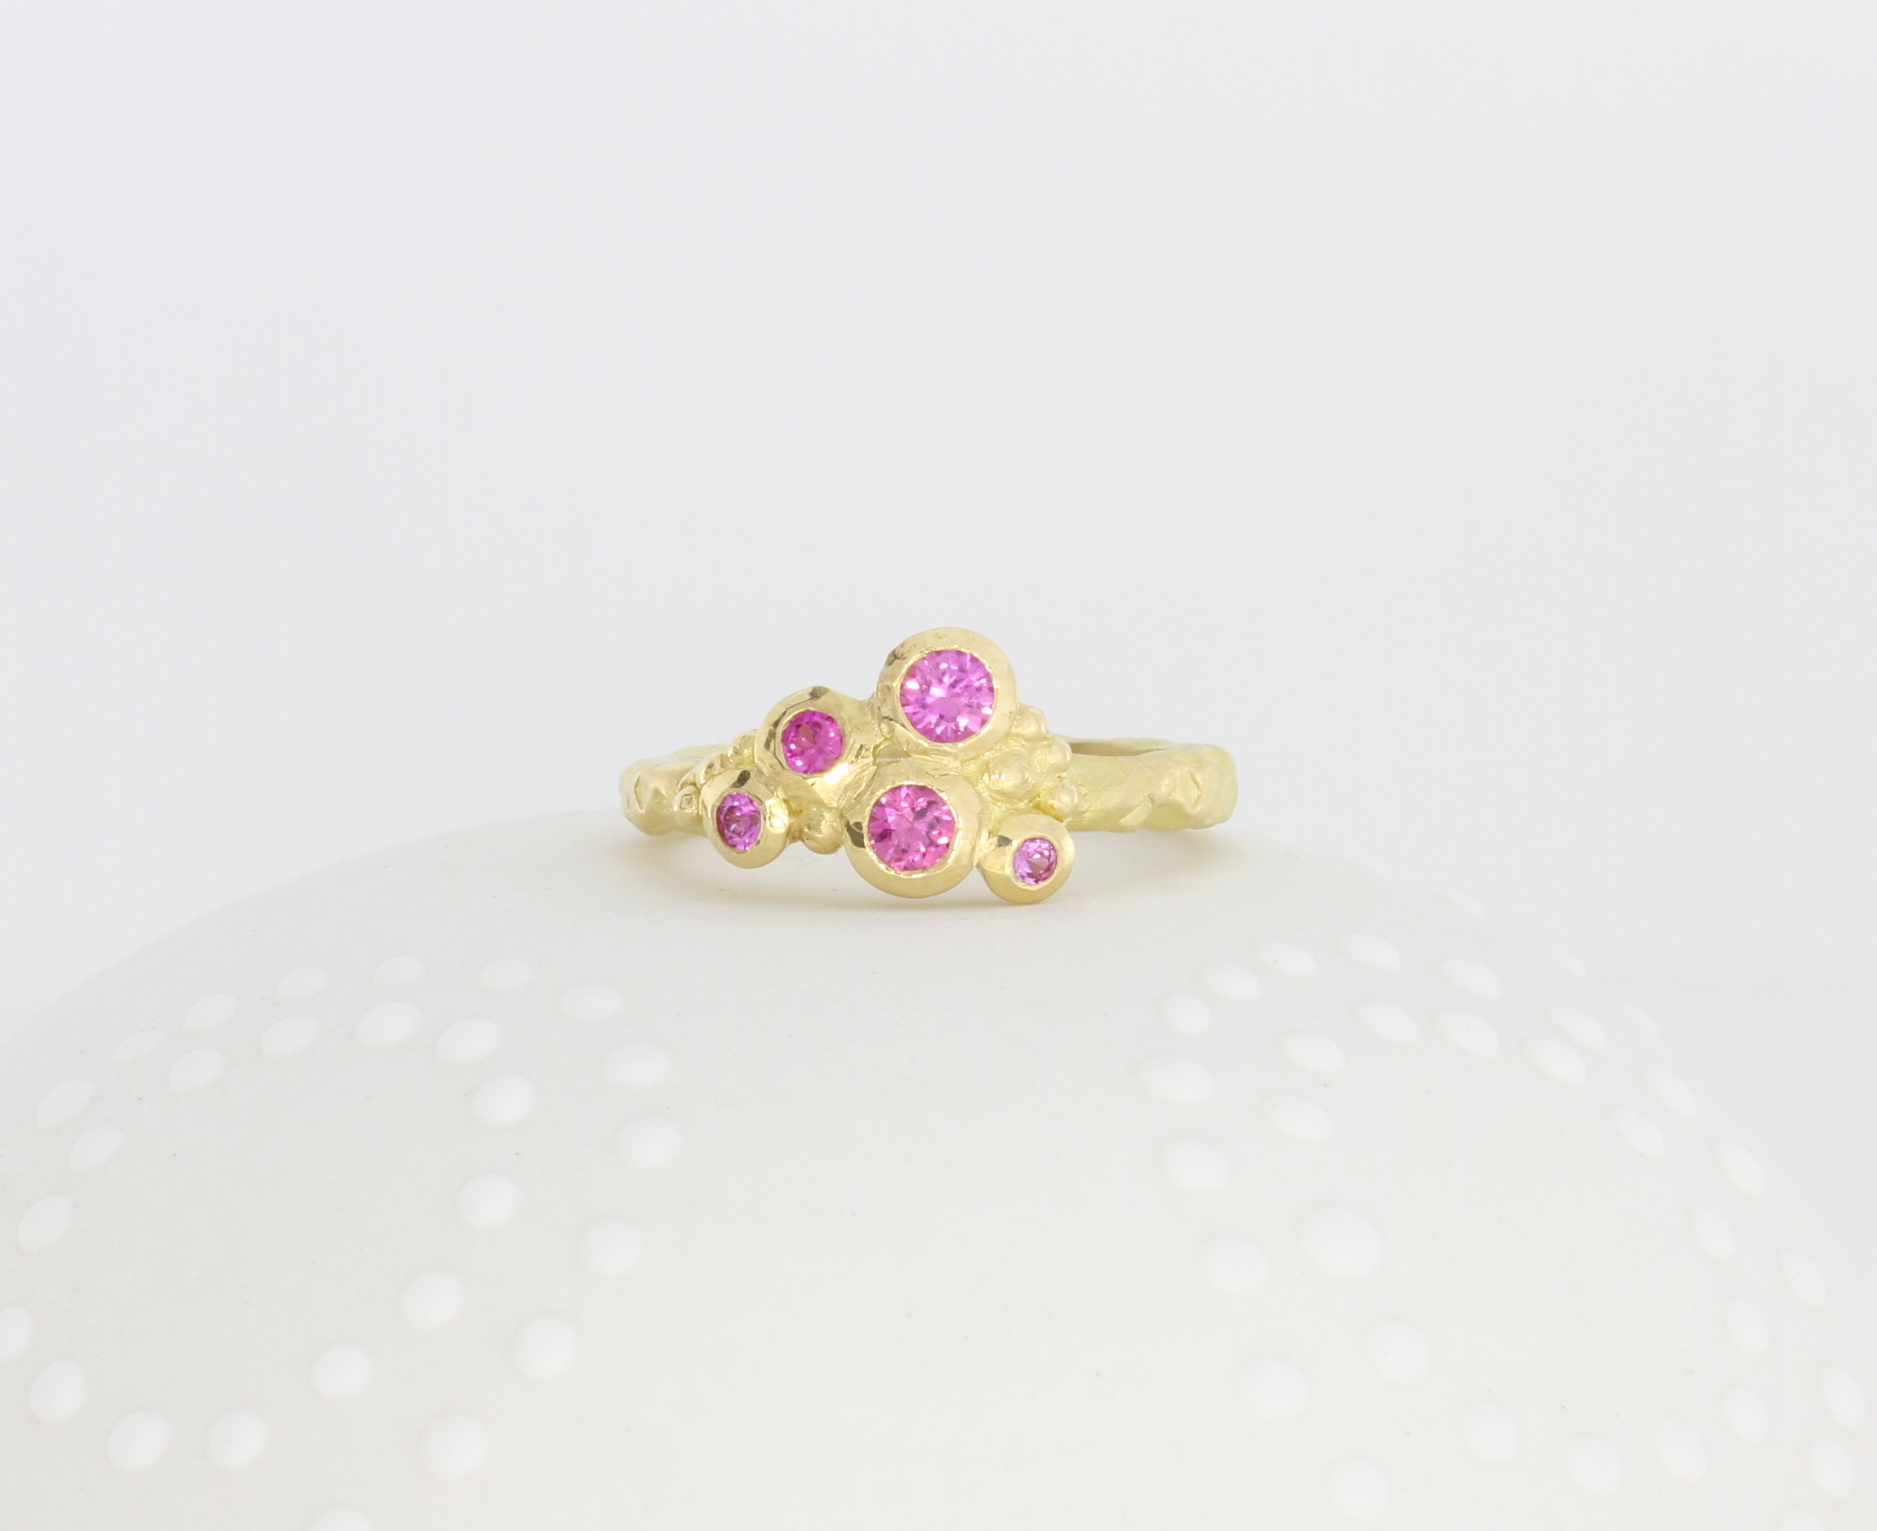 Payet gallery sapphire gold ring